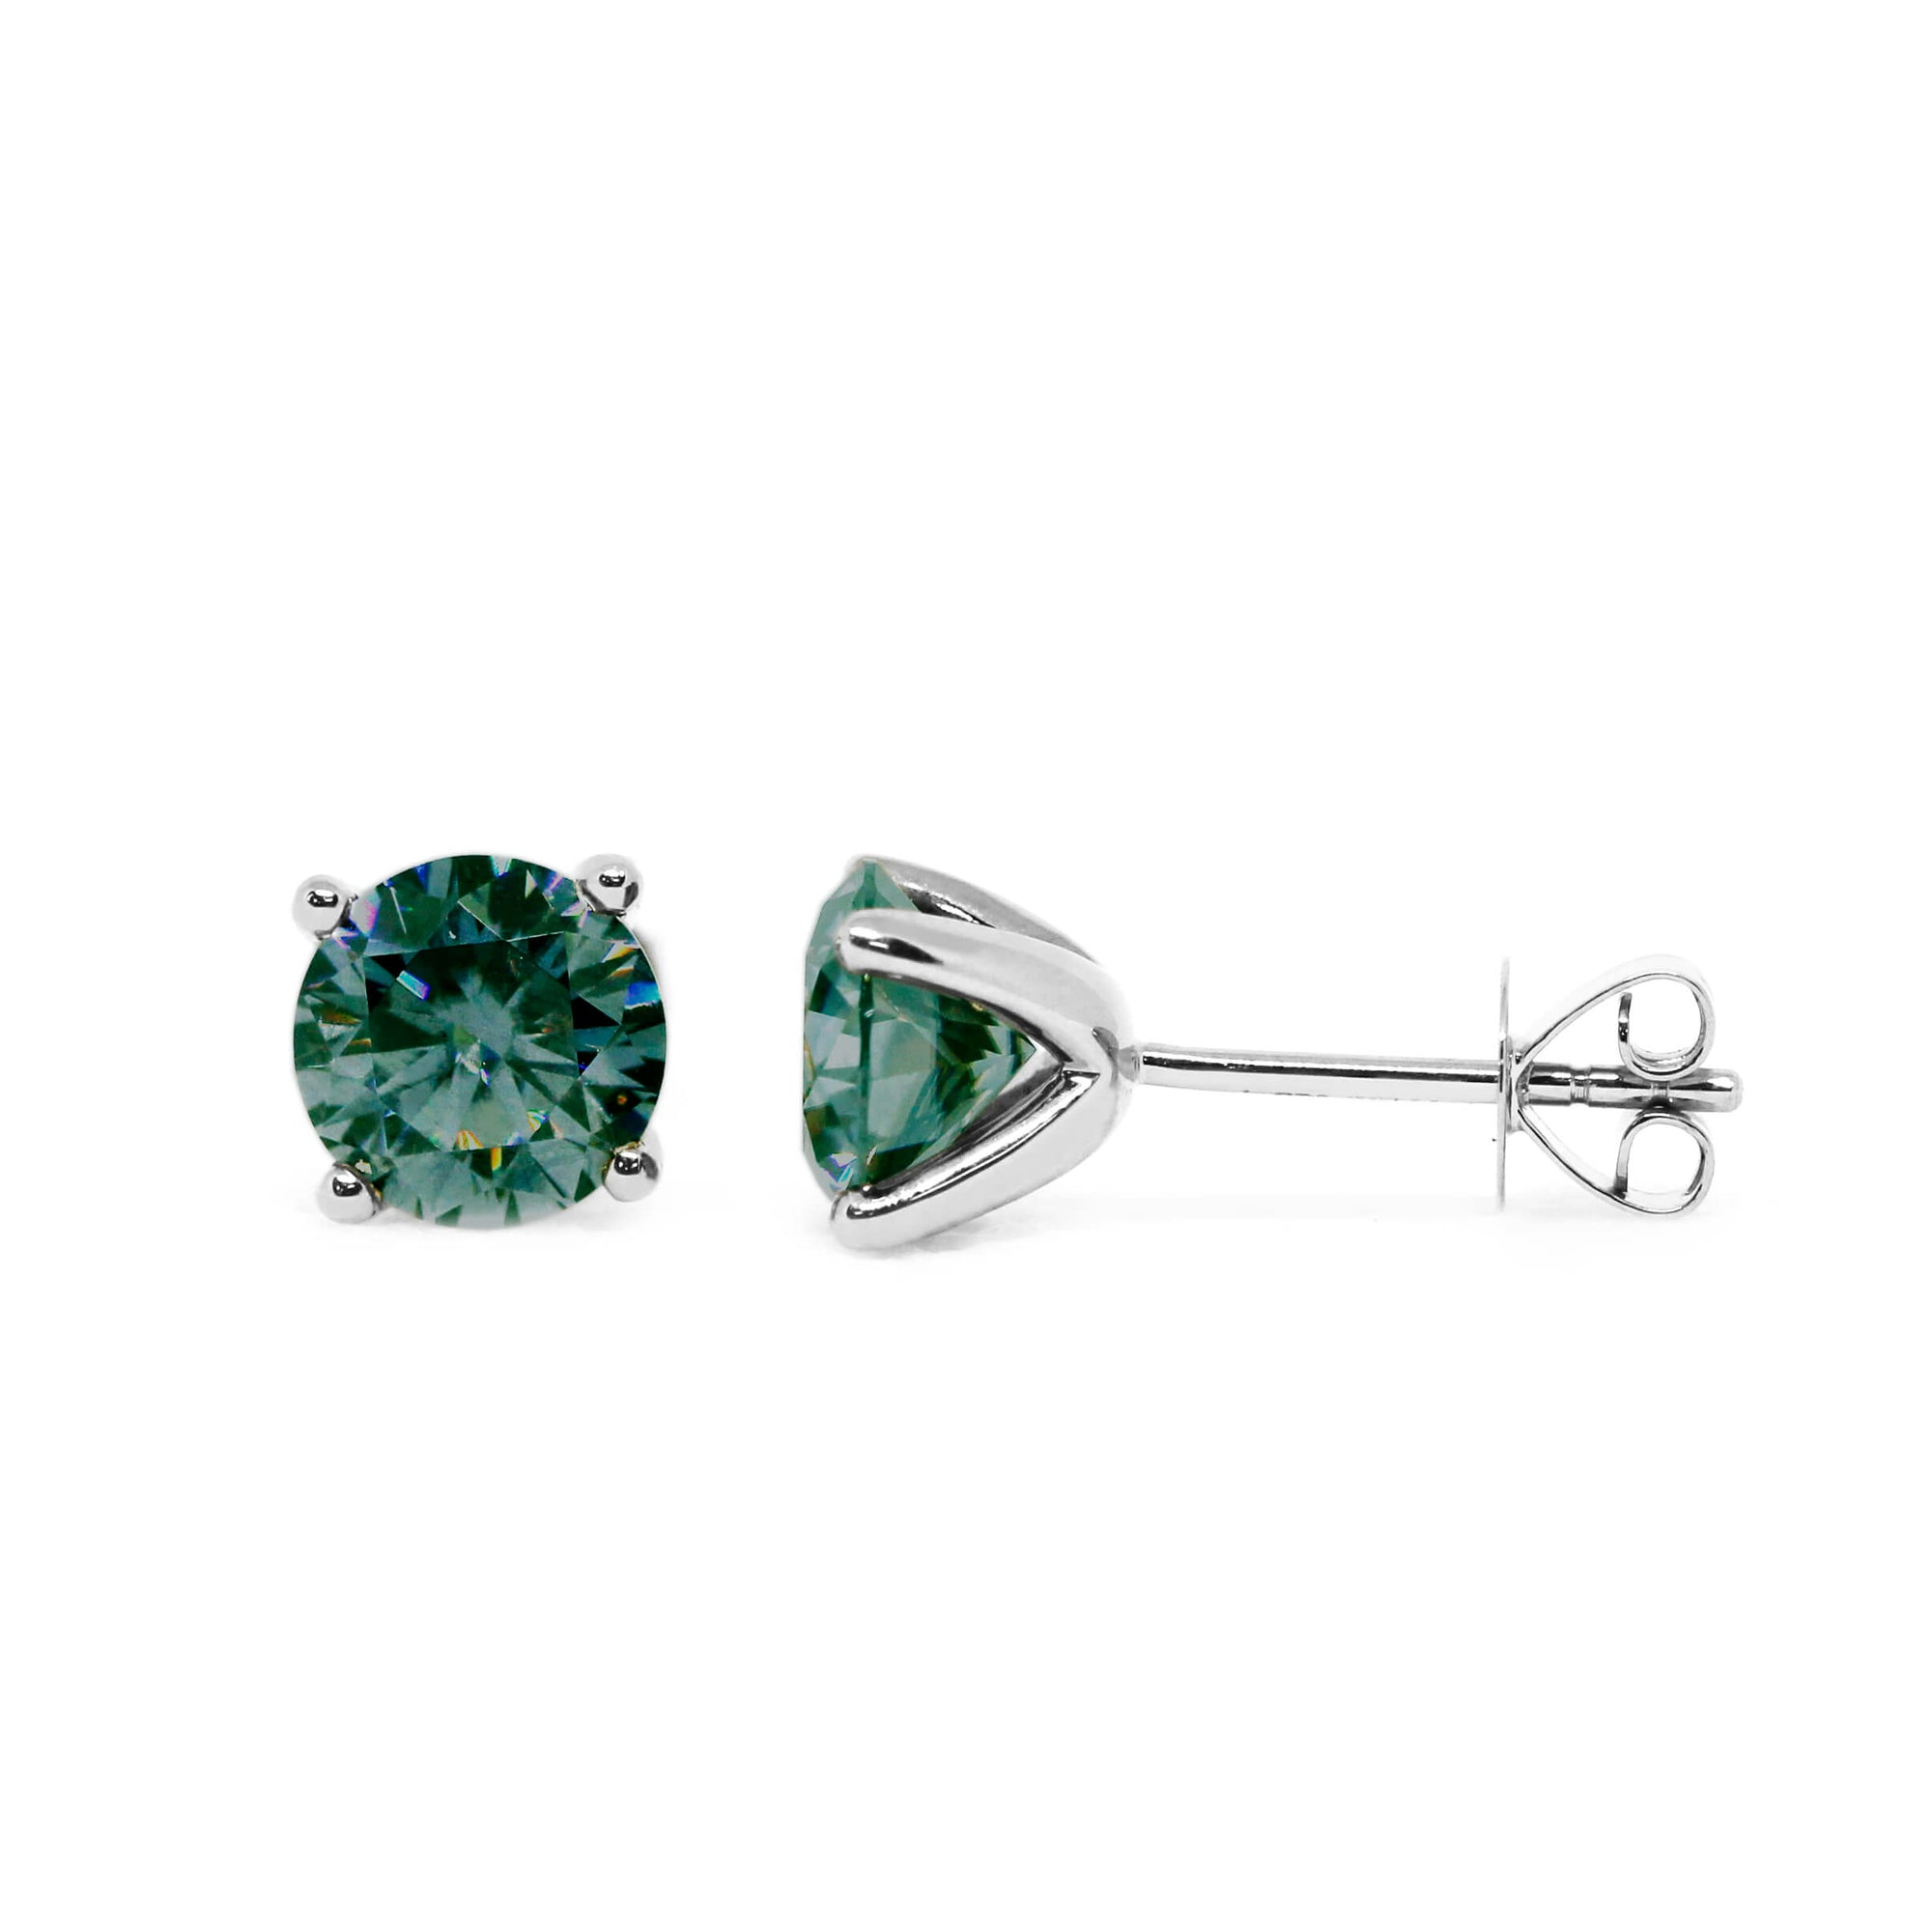 Dark Green Moissanite Solitaire 18K White Gold Stud Earrings - Lecaine Gems Moissanite